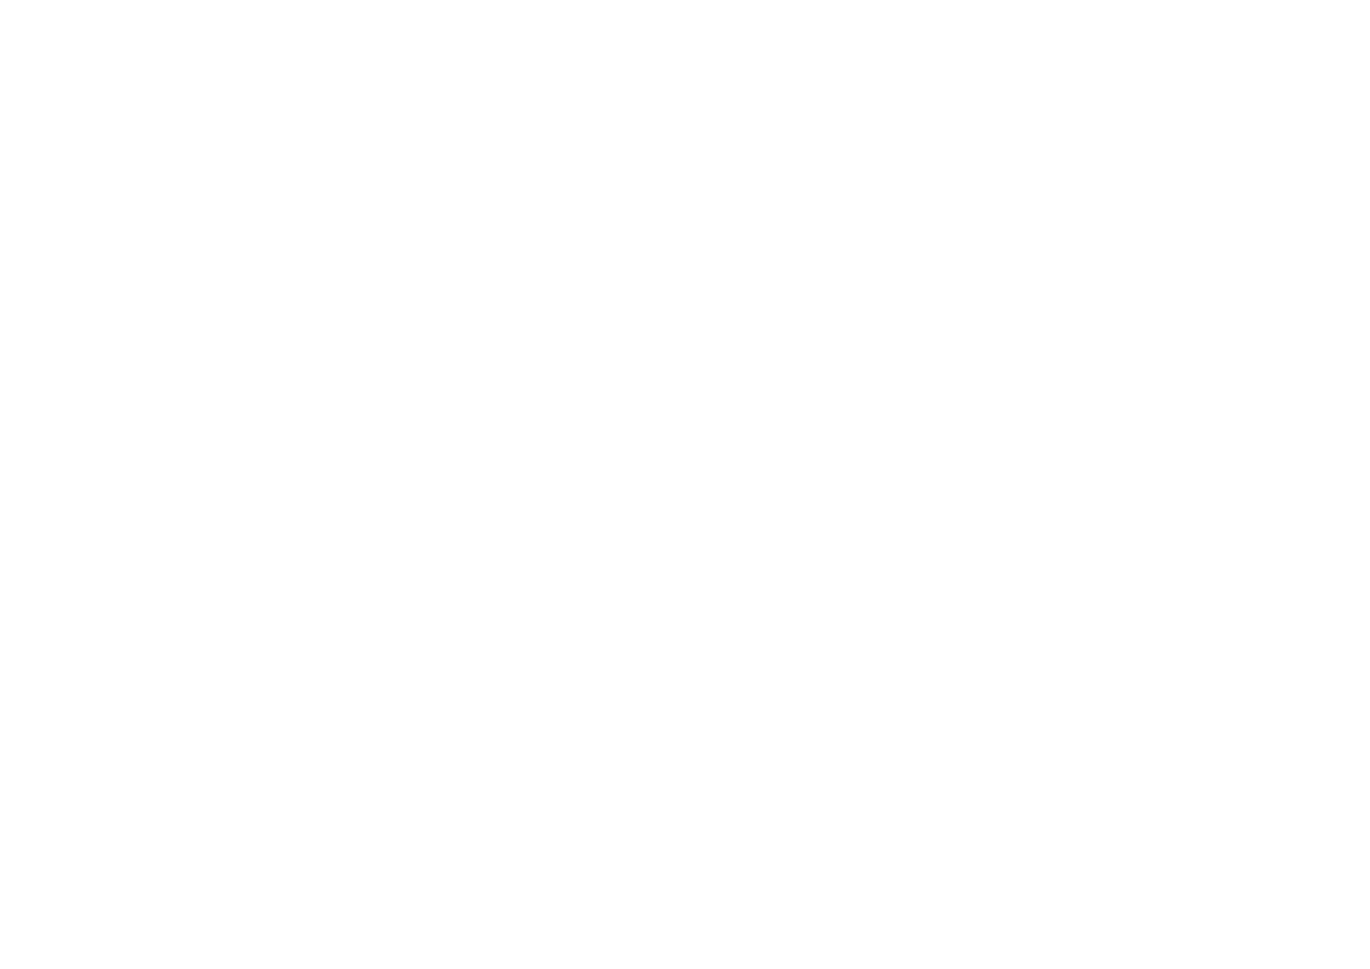 The Inquisition of the Big Bad Wolf